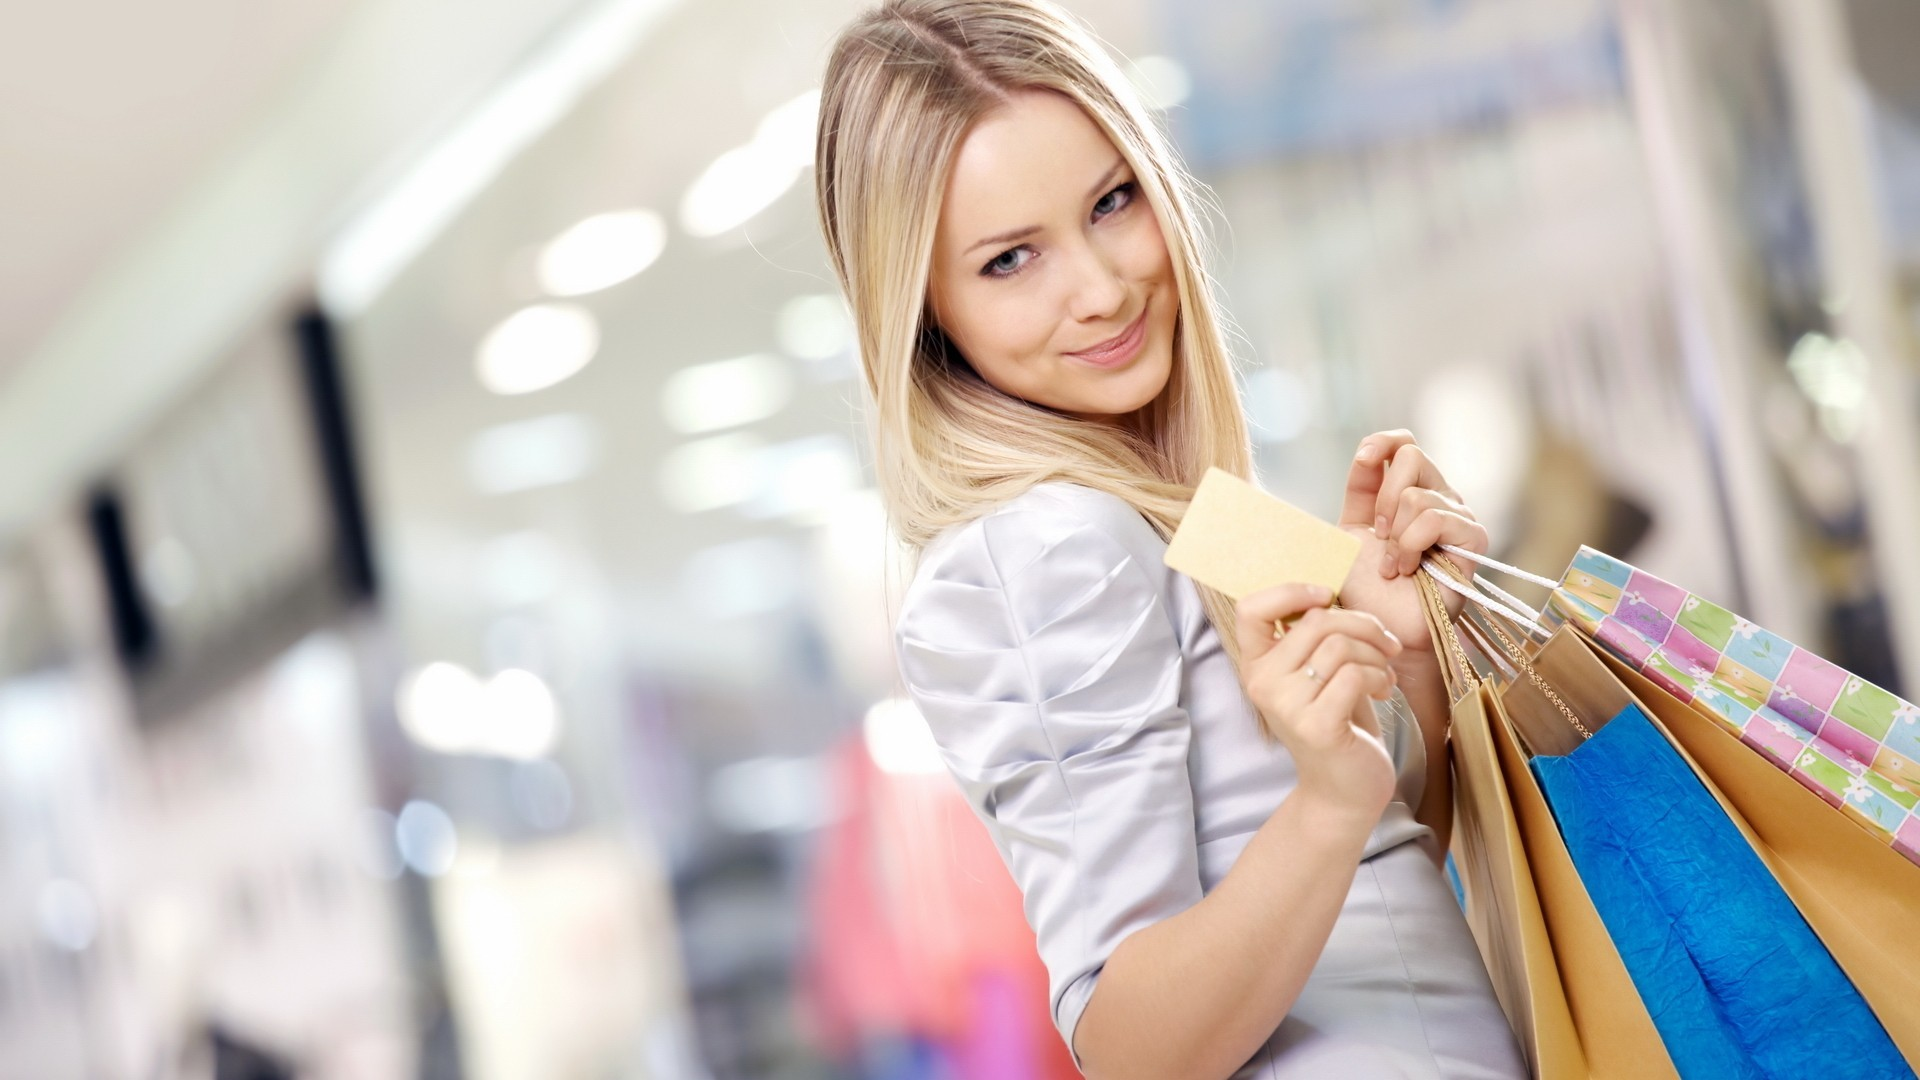 blondes woman models shopping HD Wallpaper